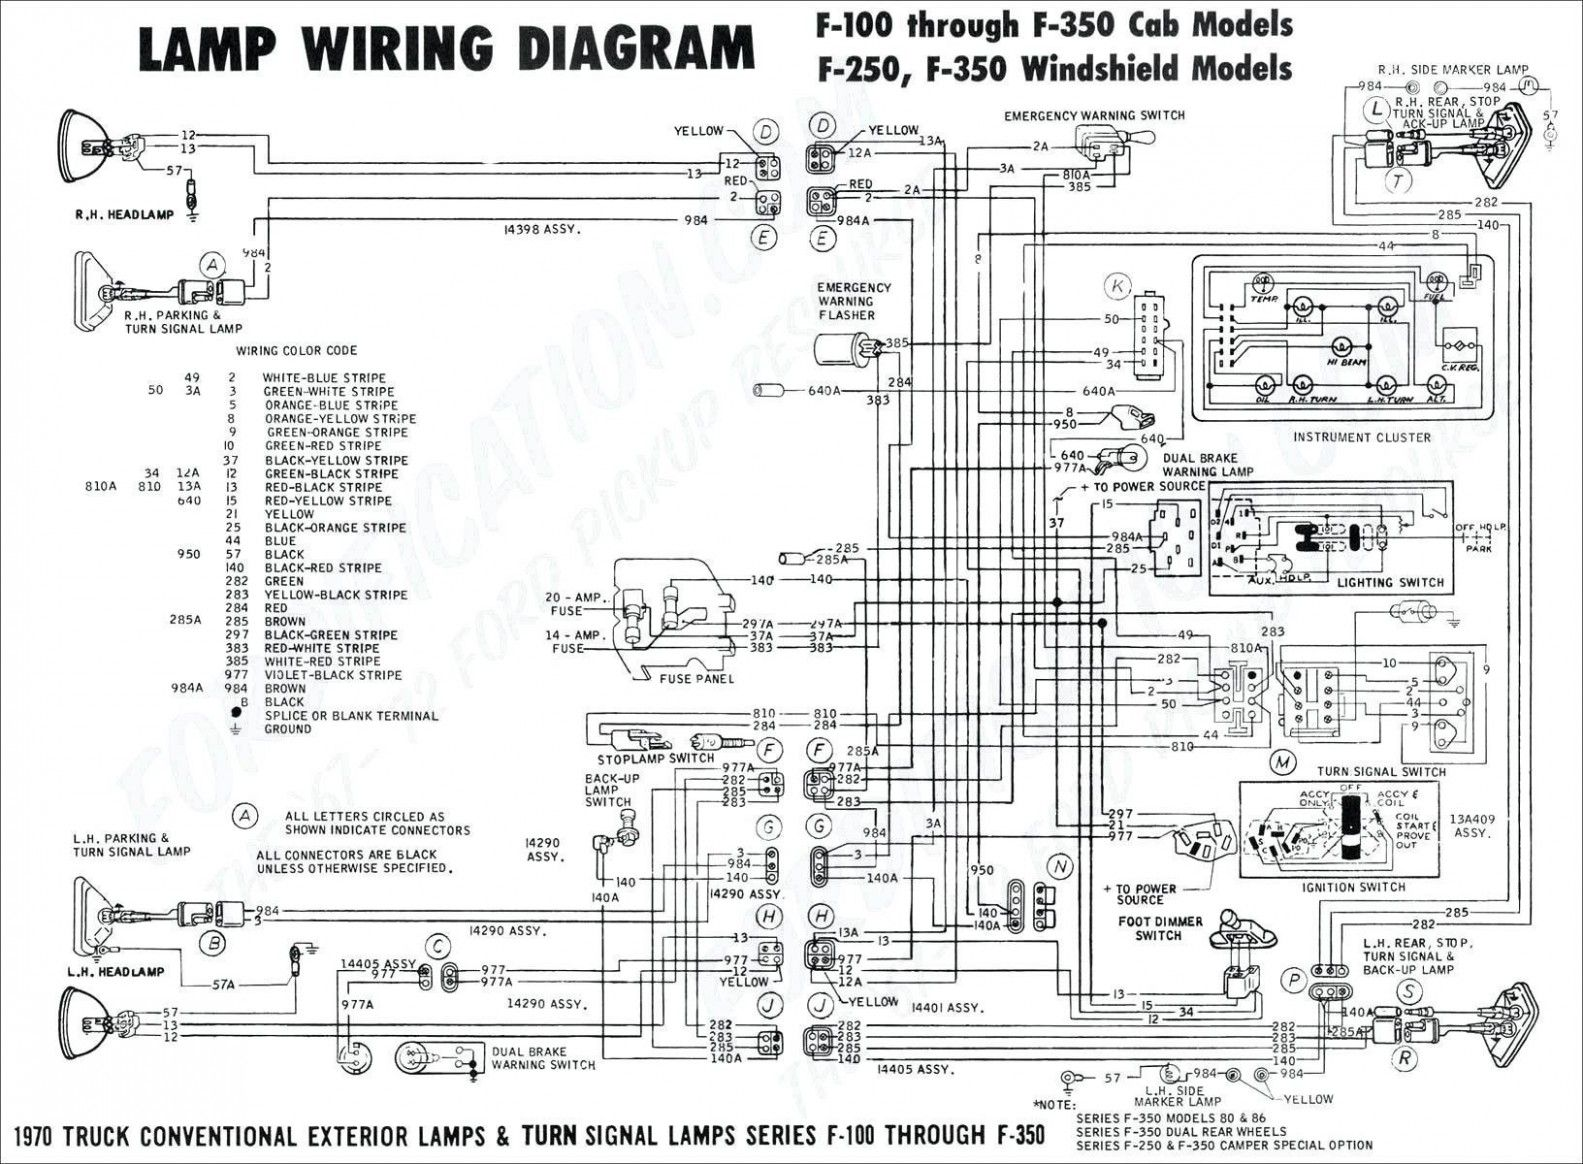 Engine Diagram 5 Jetta Yellow Engine Diagram 5 Jetta Yellow